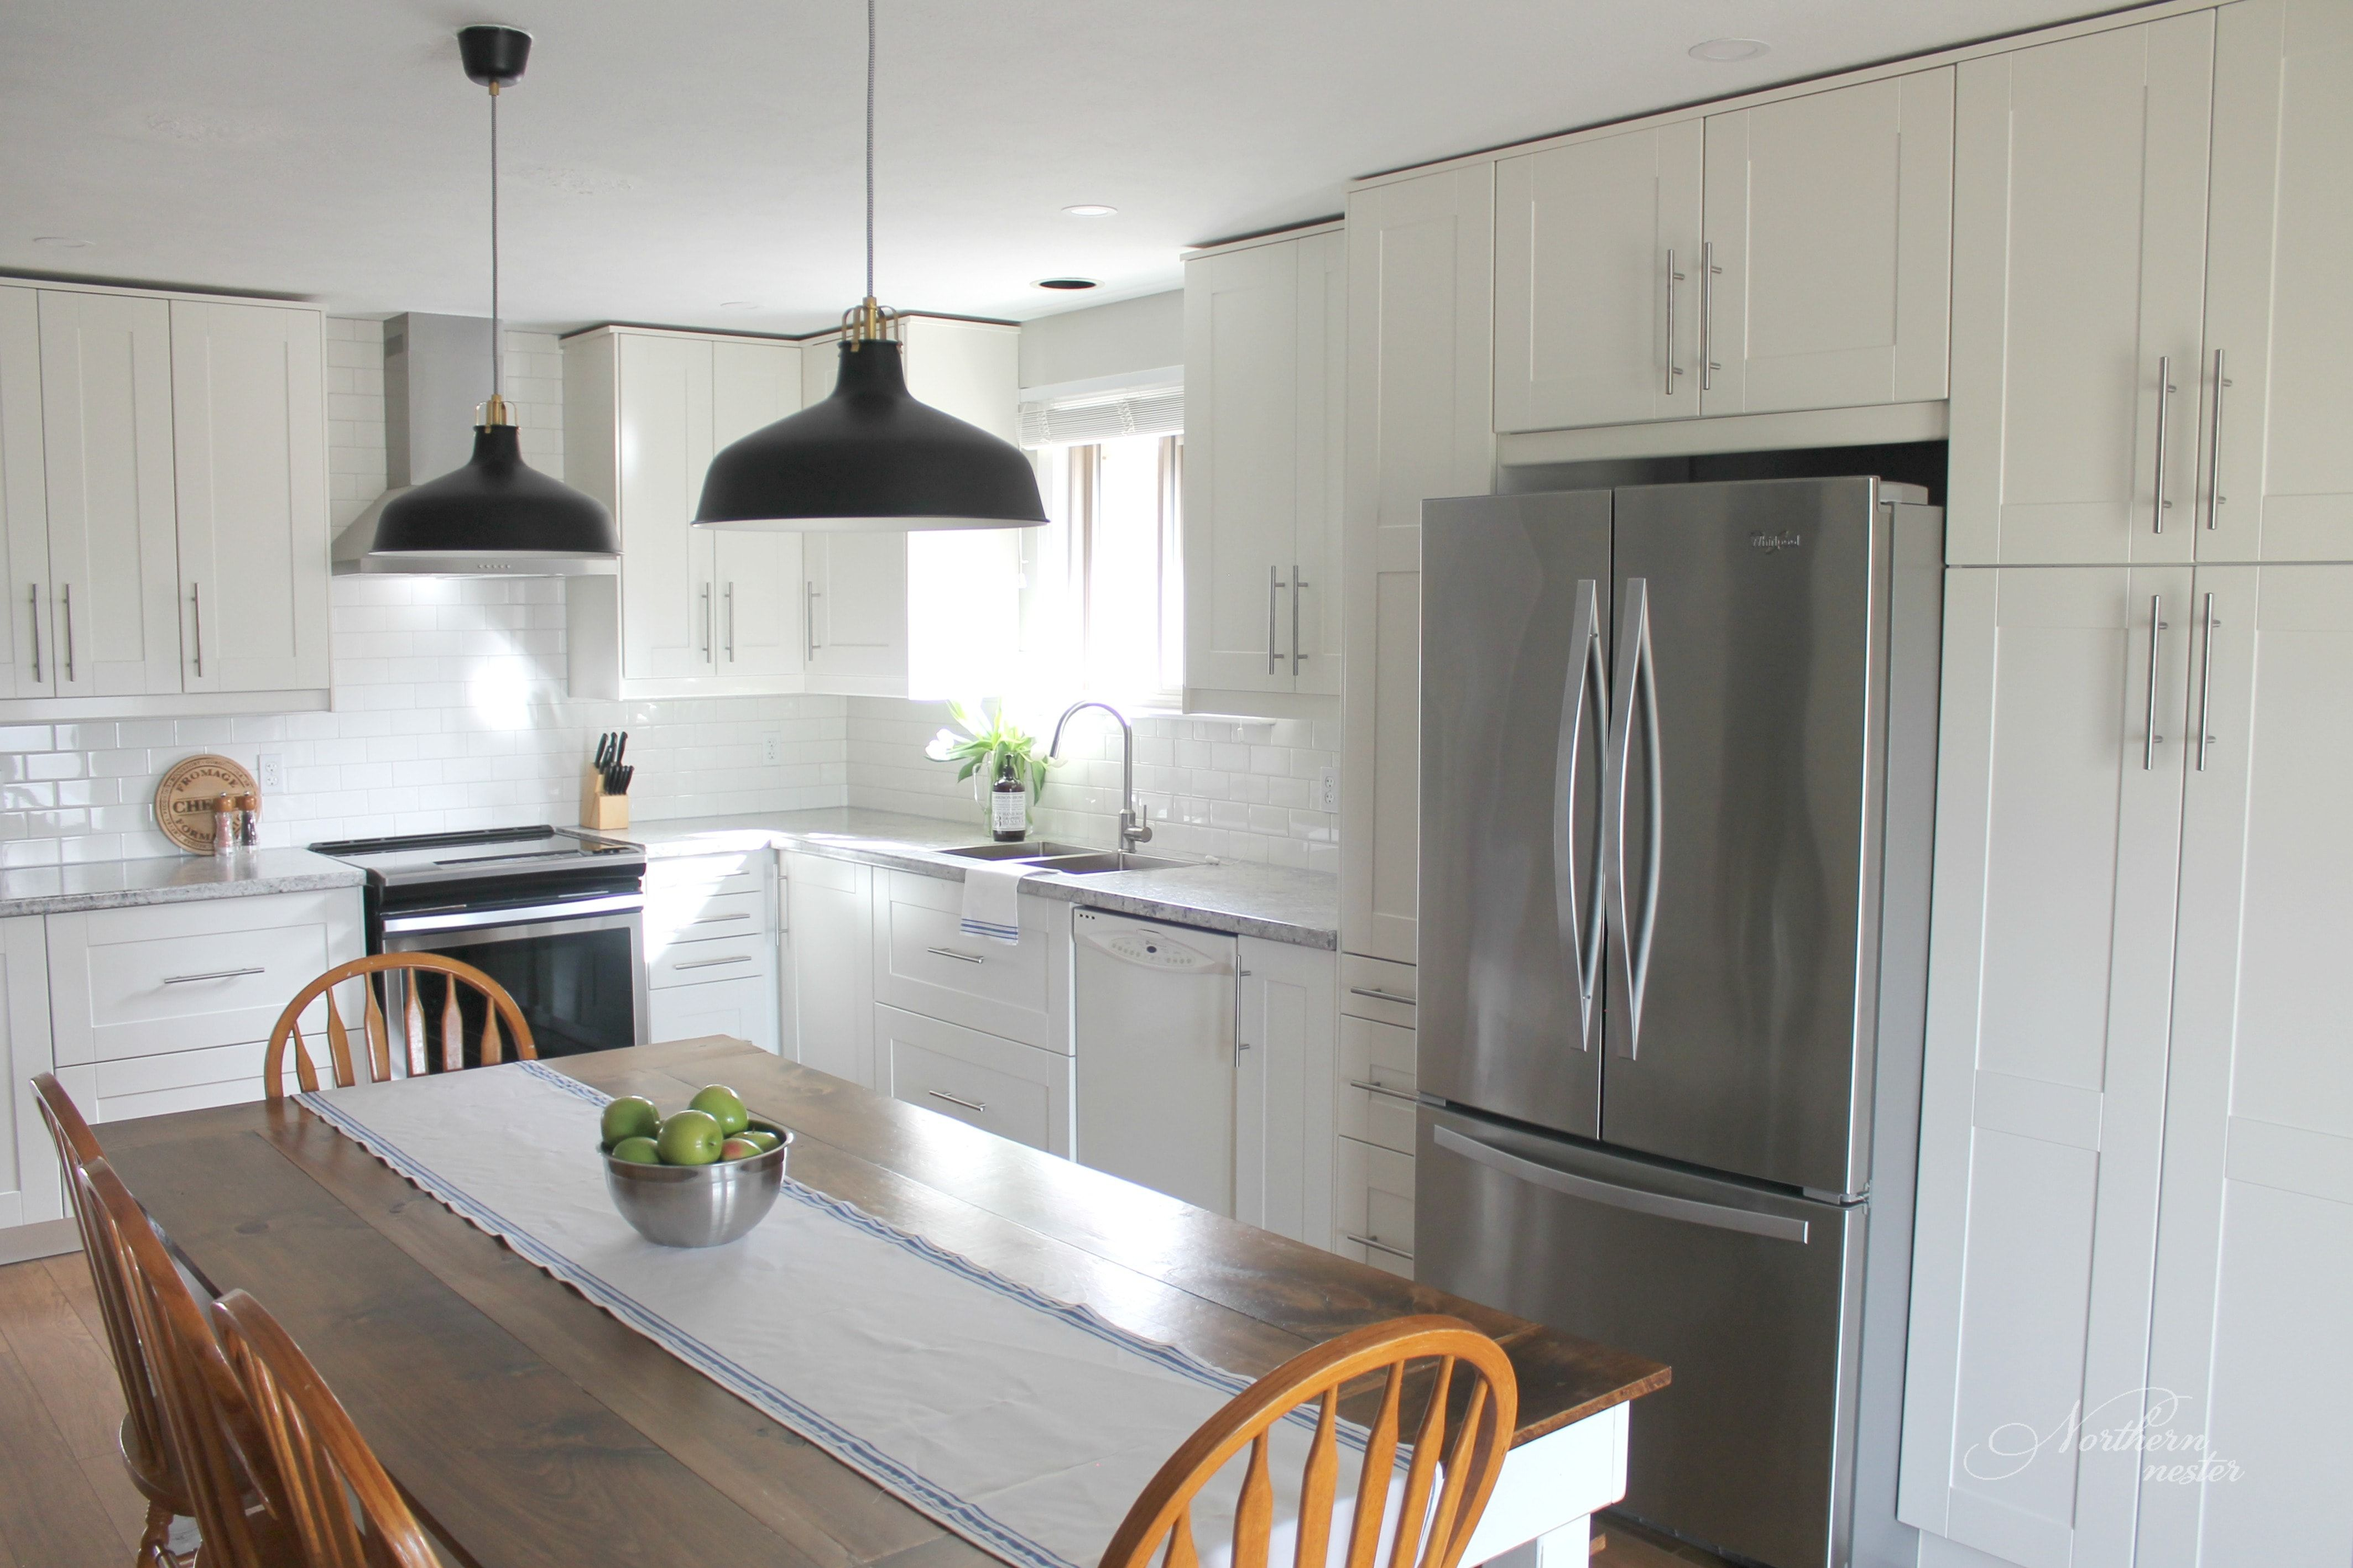 IKEA Kitchen Reno Before & After! Northern Nester